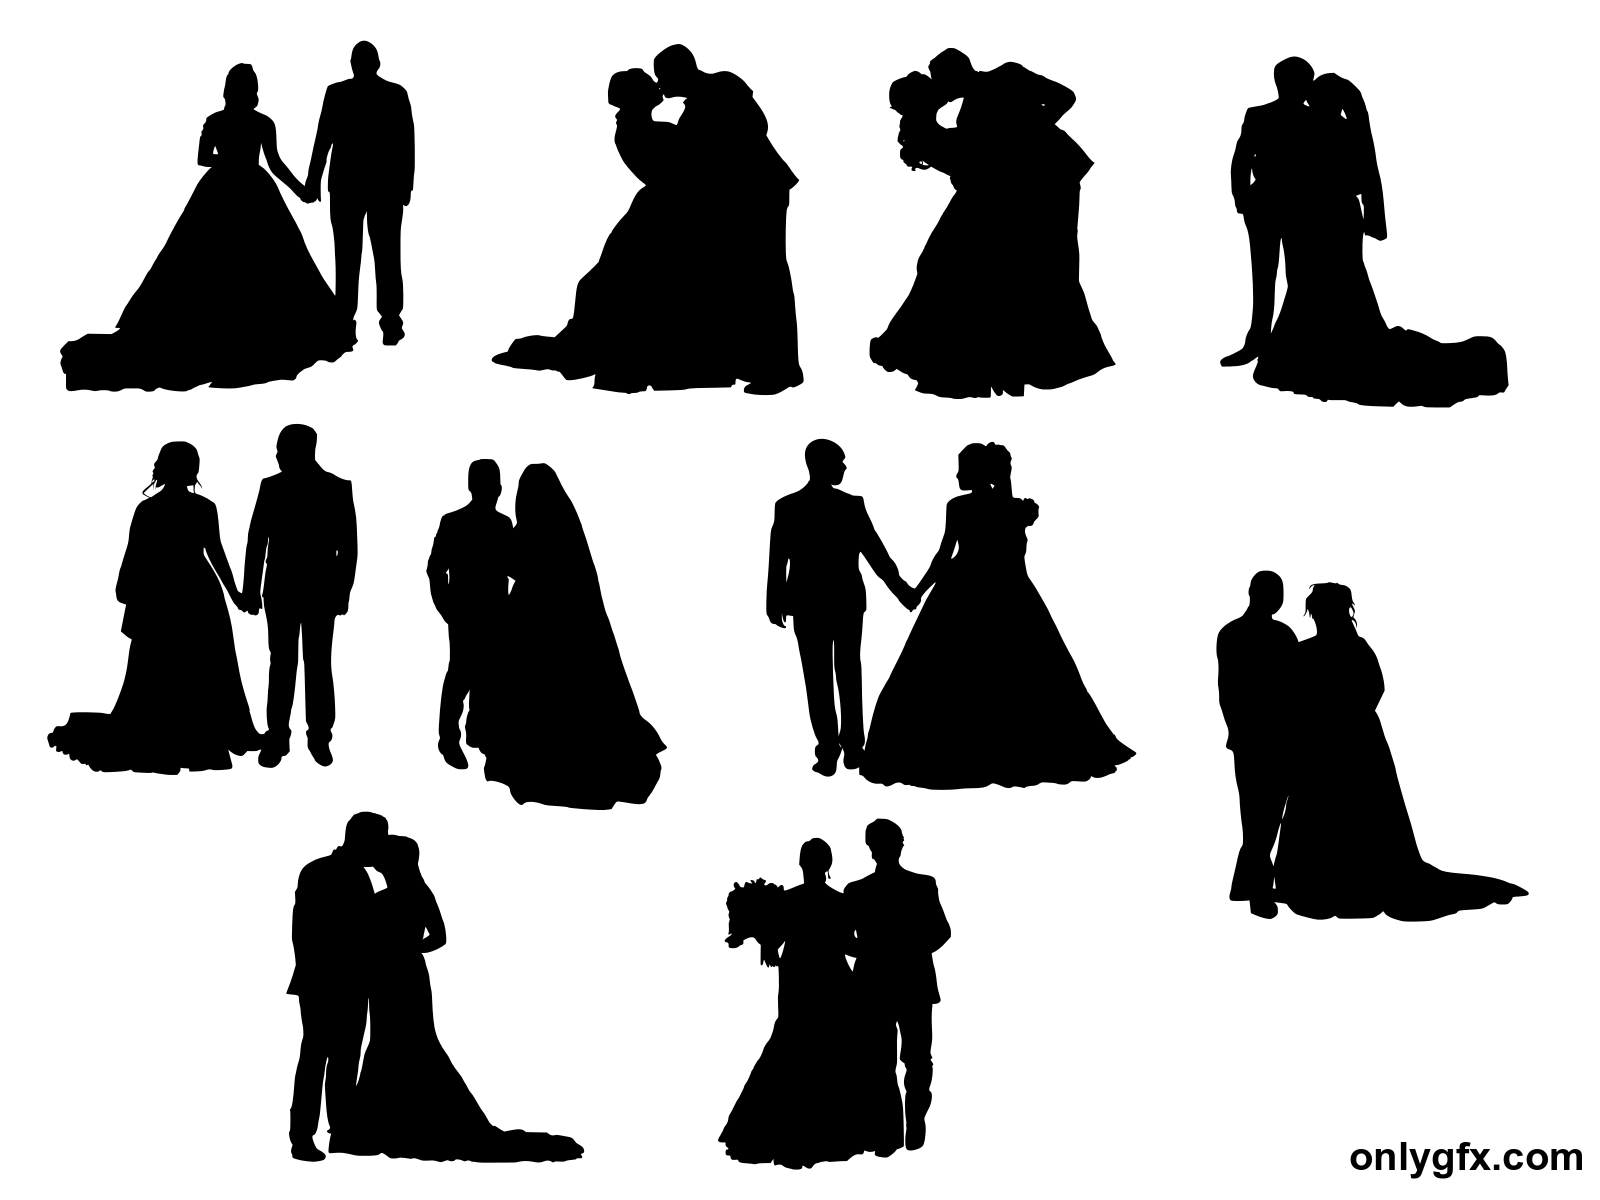 10 Bride And Groom Silhouette Png Transparent Onlygfx Com